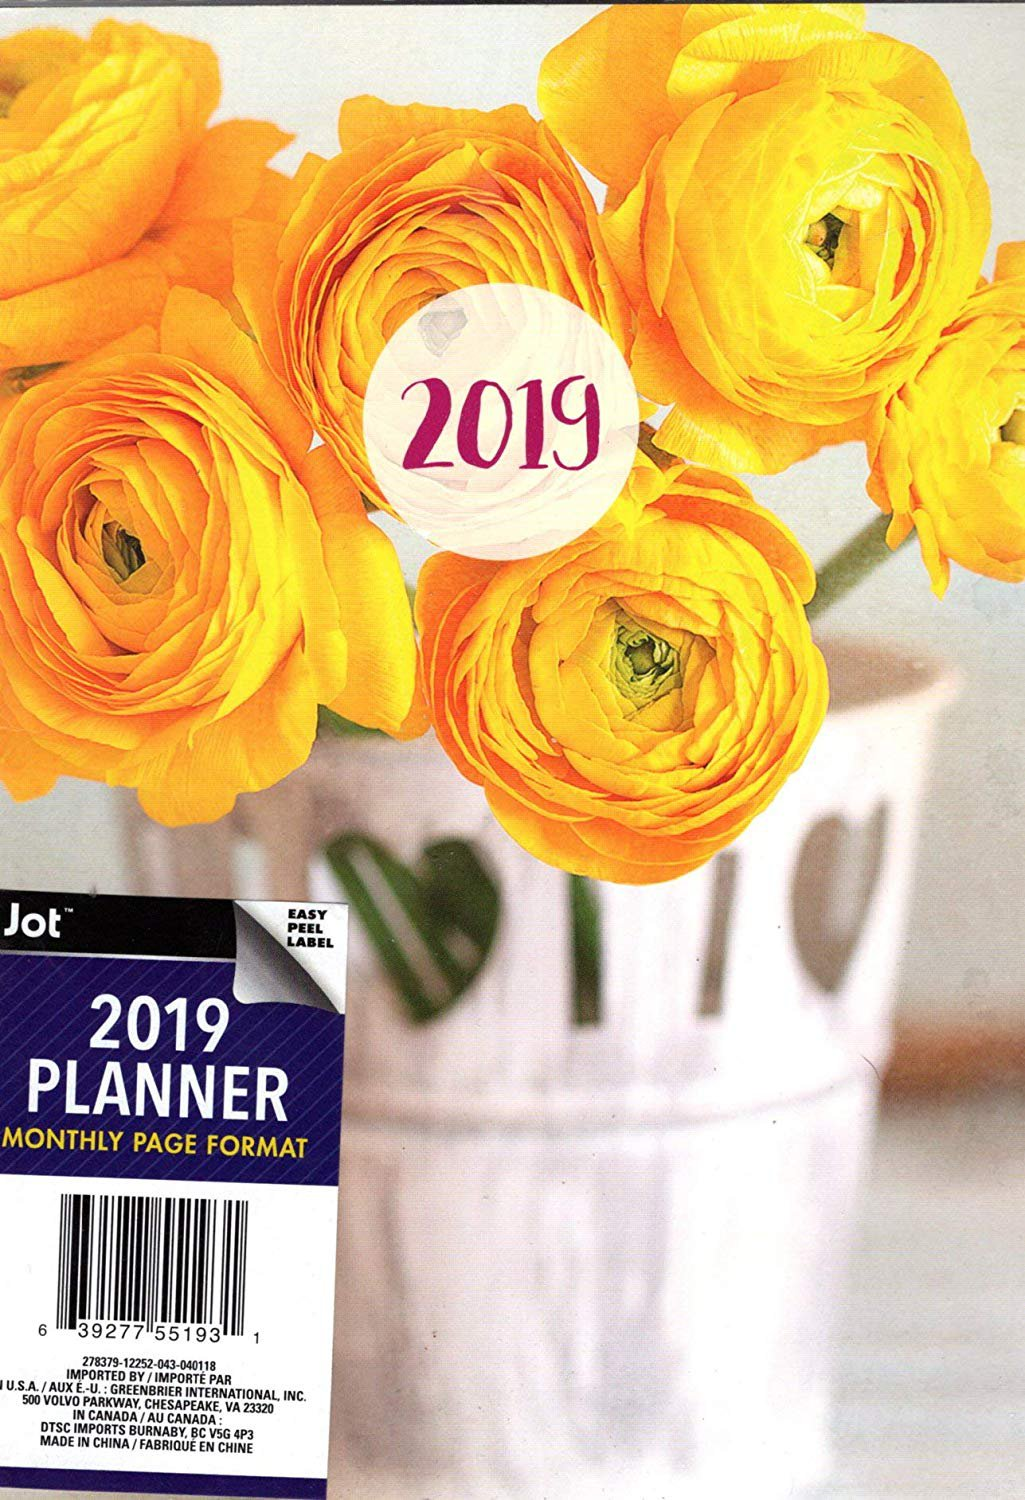 2019 Personal Monthly Planner/Calendar / Organizer - Monthly Page Format -  (Yellow Flowers)